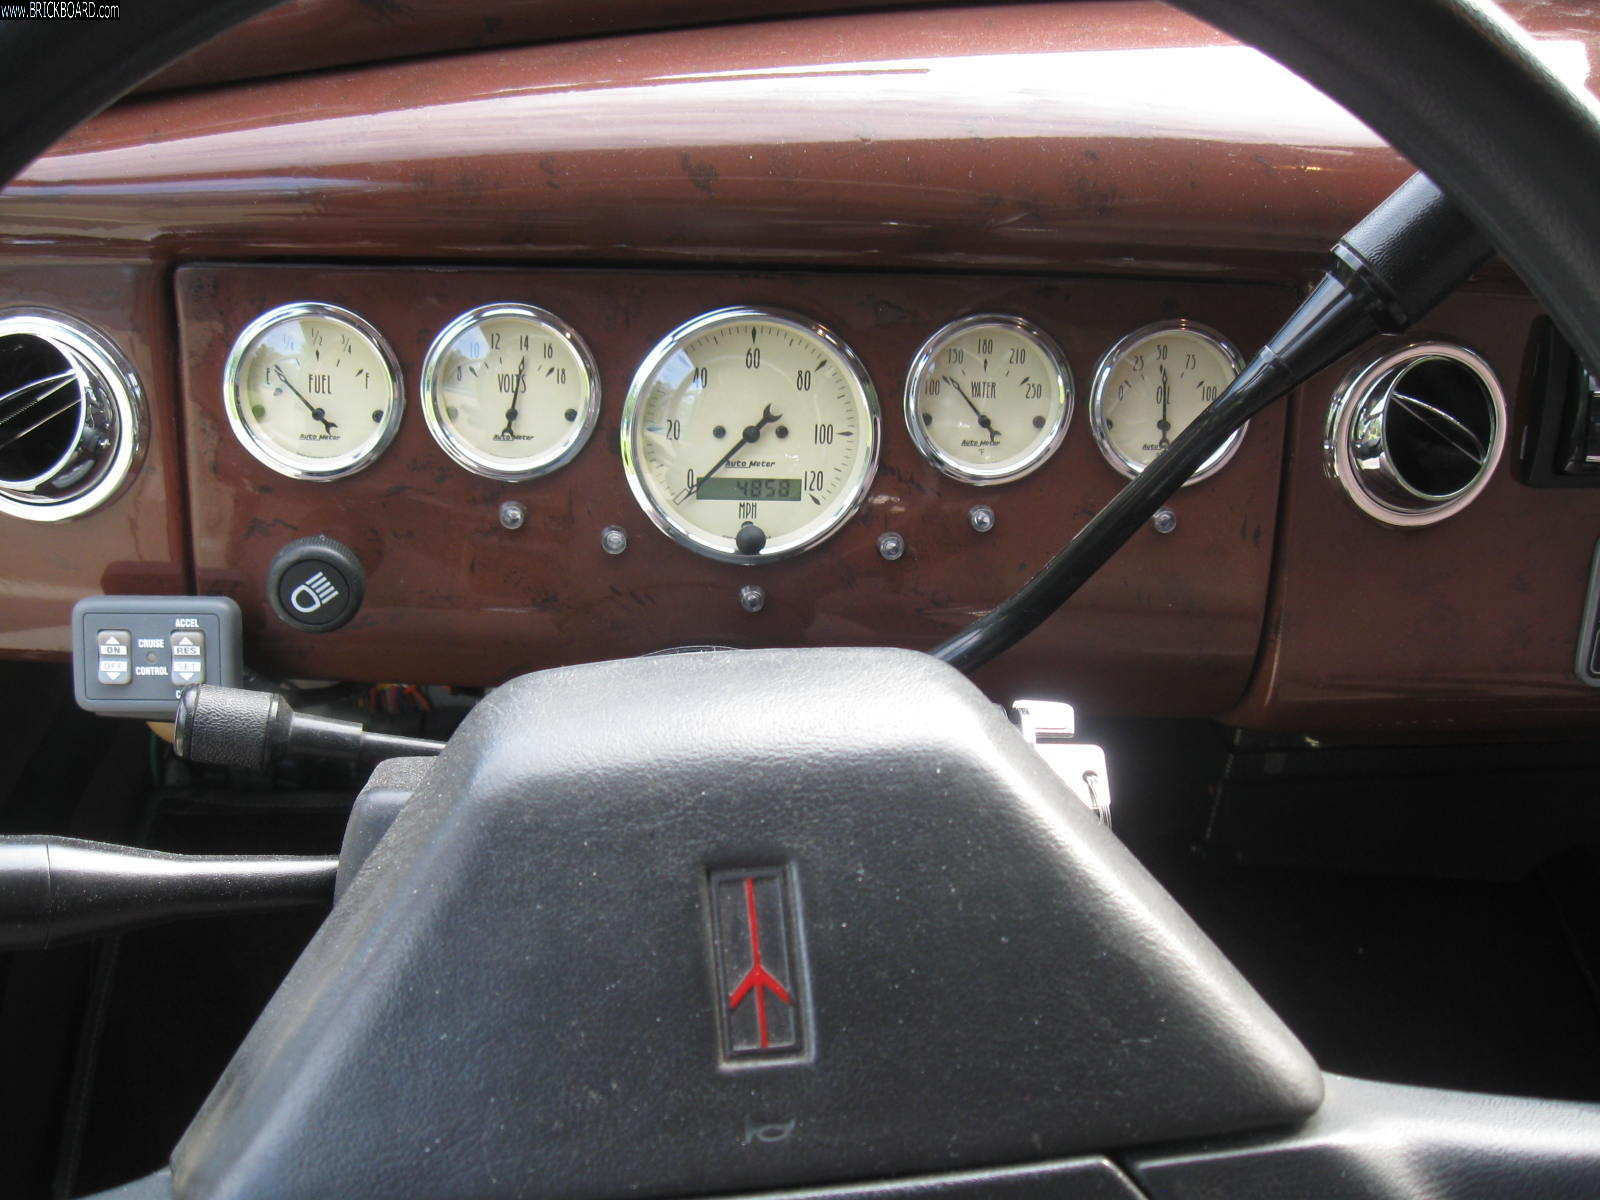 Volvo 444-544 -- Aftermarket speedometer and gauges 544 1963